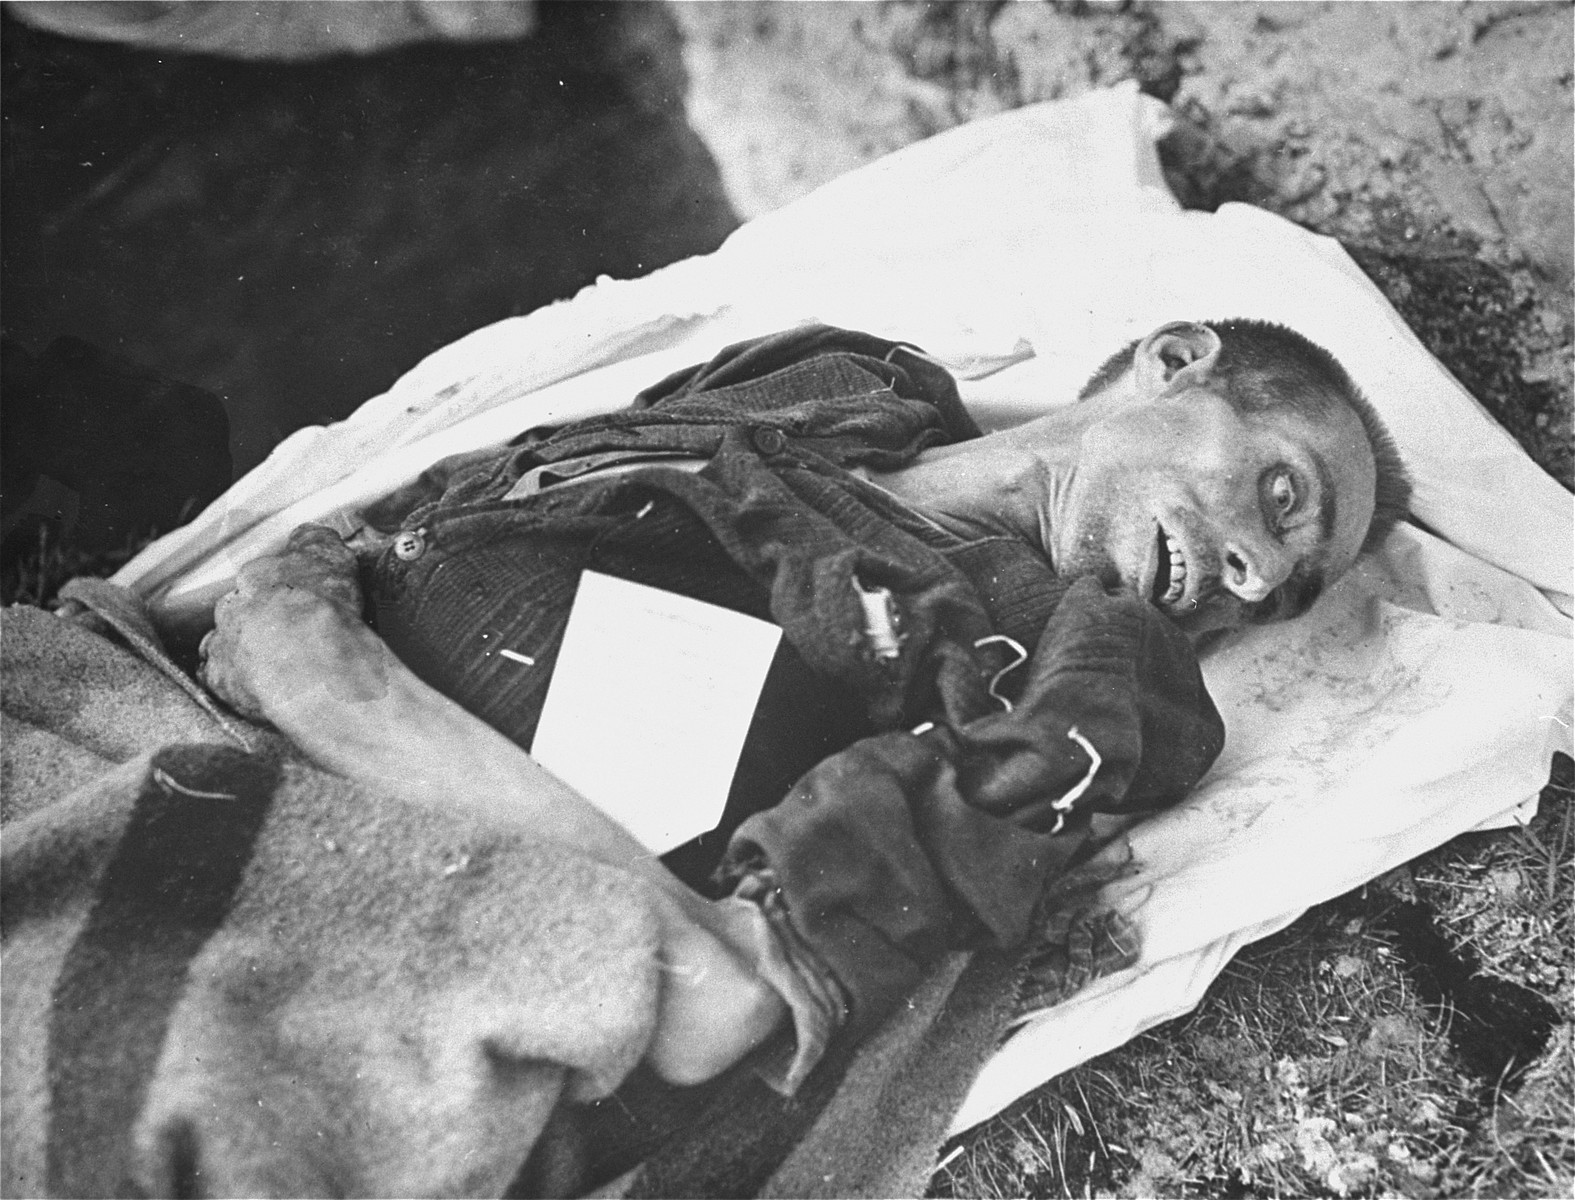 The body of a prisoner who died of starvation.  The tag on his body notes the cause of his death.